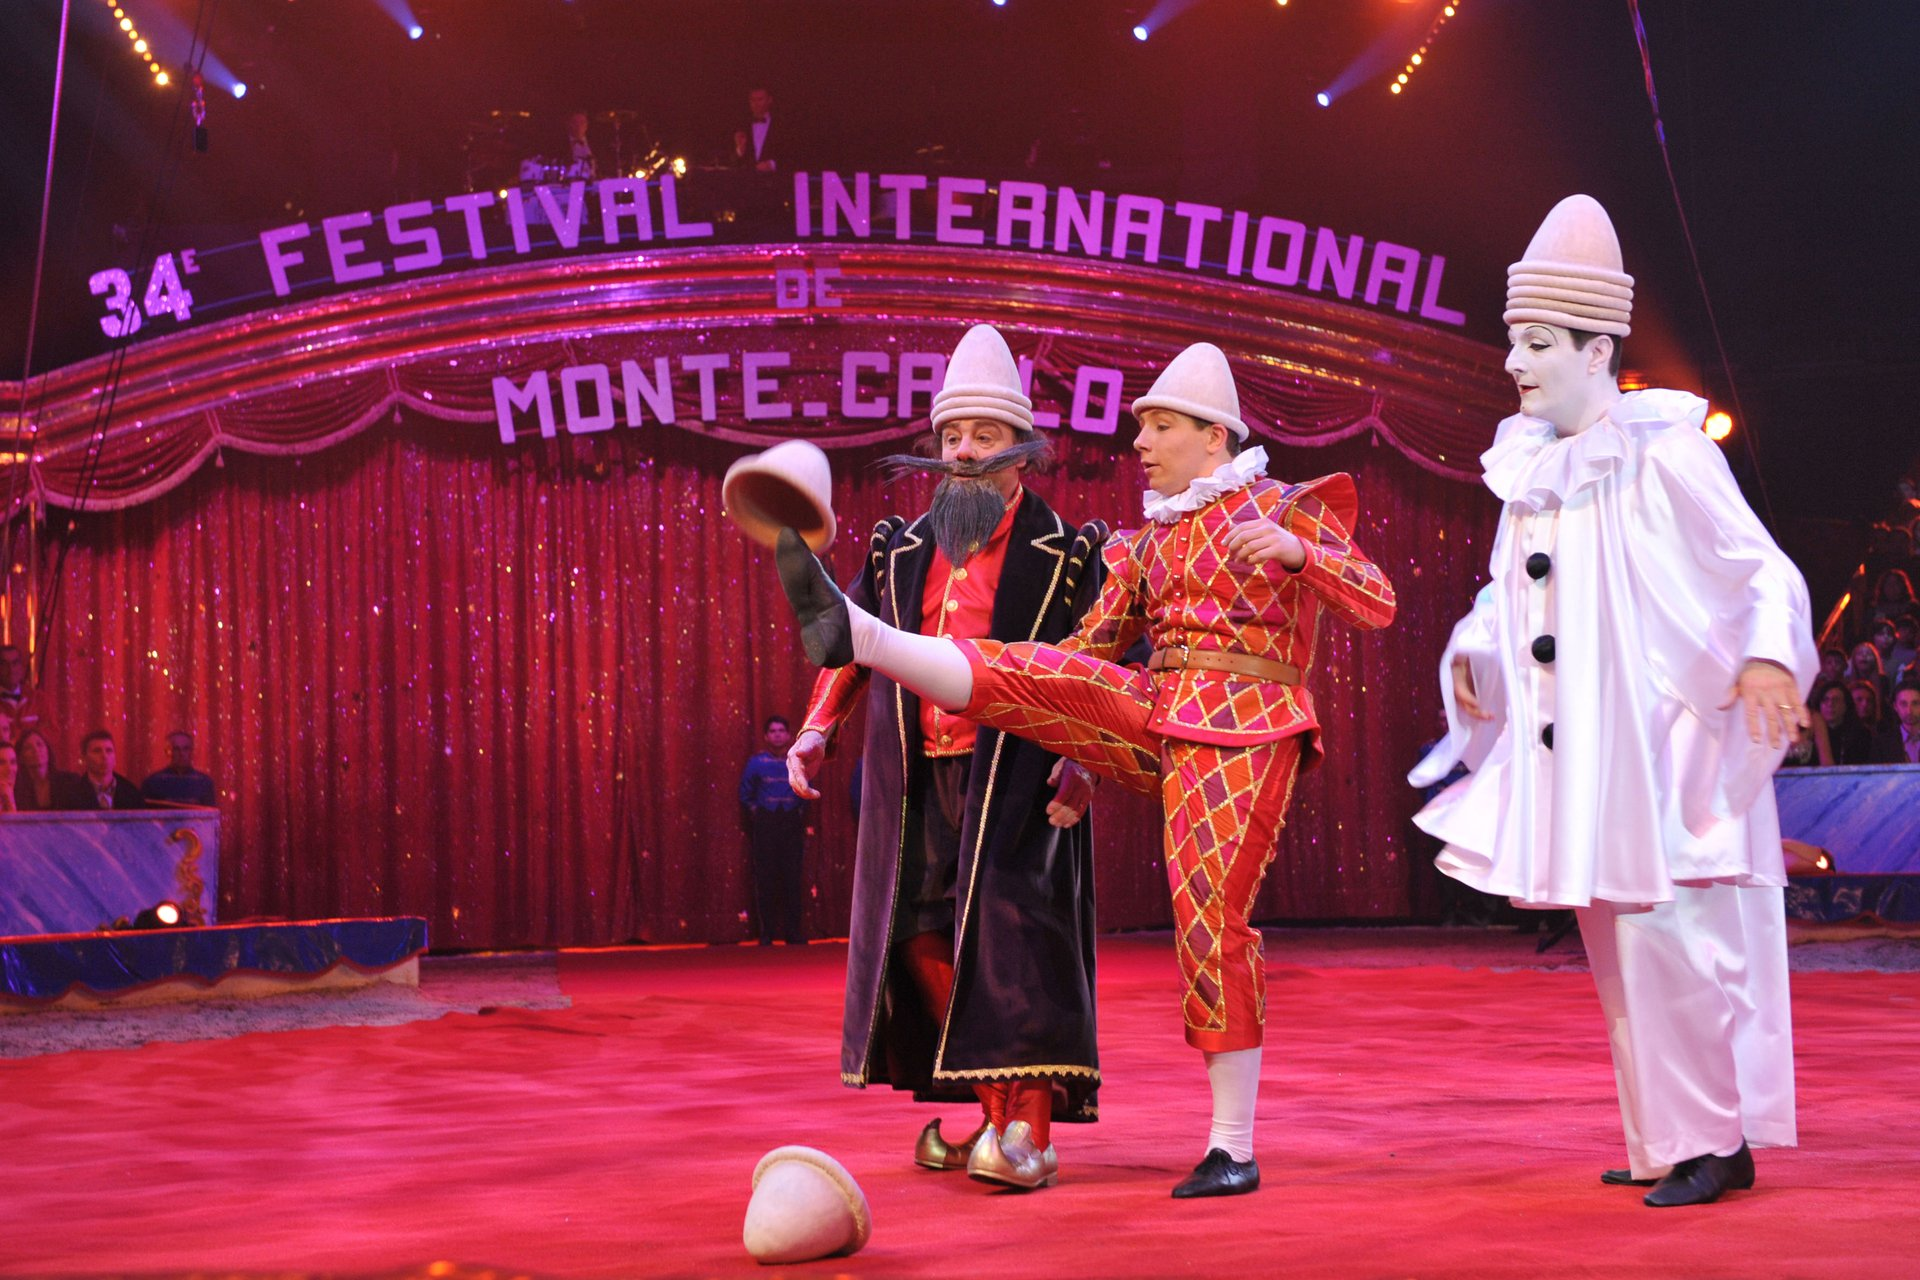 International Circus Festival of Monte-Carlo in Monaco 2020 - Best Time